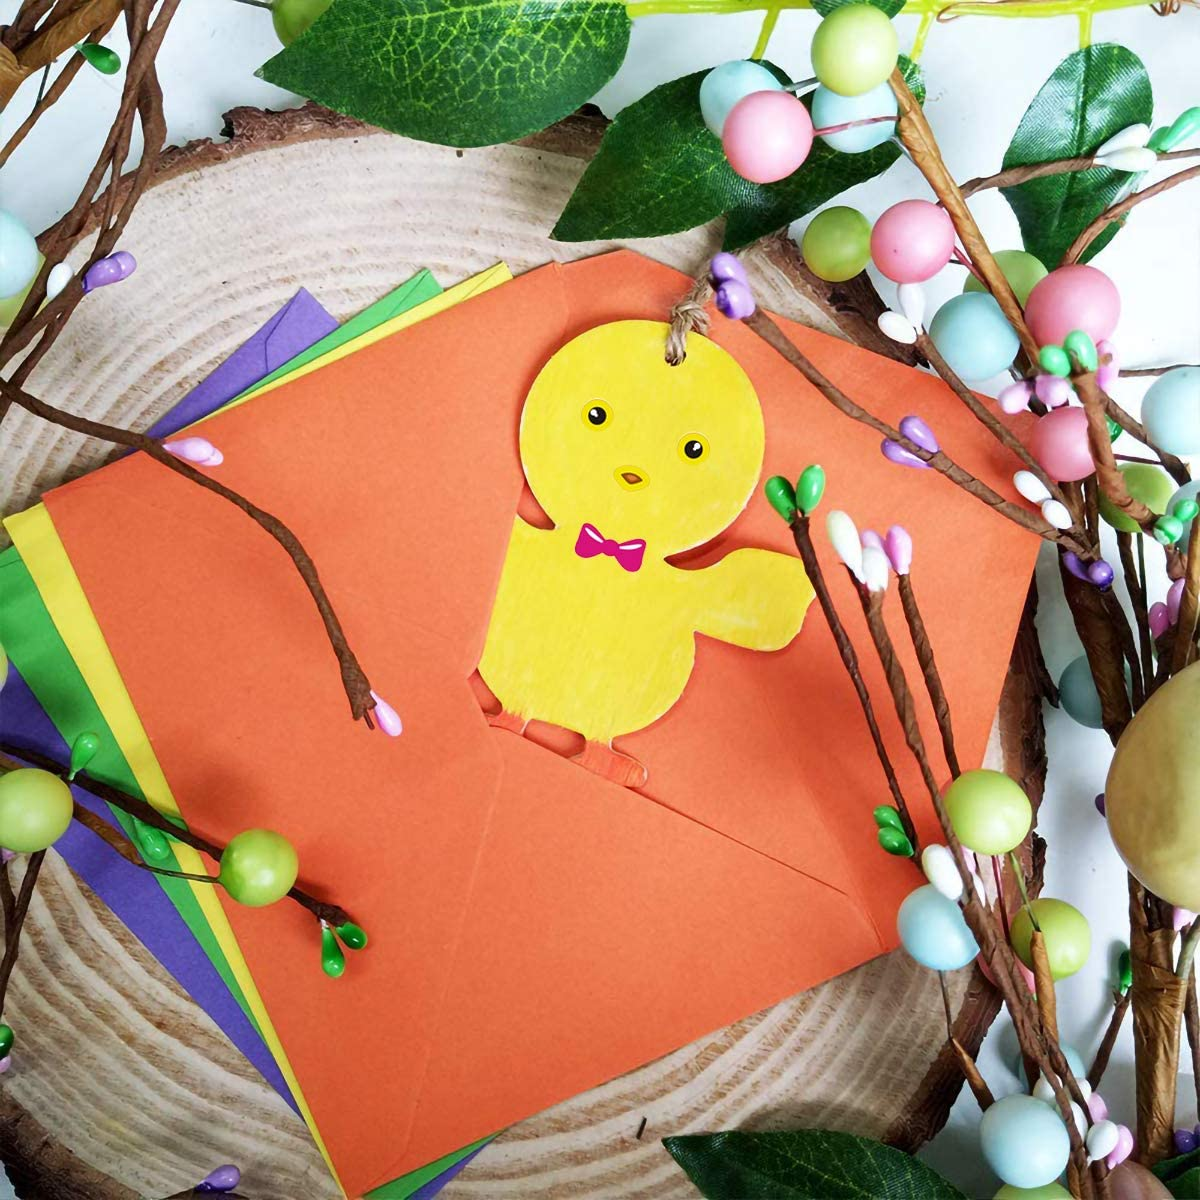 Acoavo Make Your Own Easter Stickers for Kids Lamb Mix Match Kids DIY Party Favor Supplies Craft 24 Sheets Make a Face Stickers with Bunny Chick